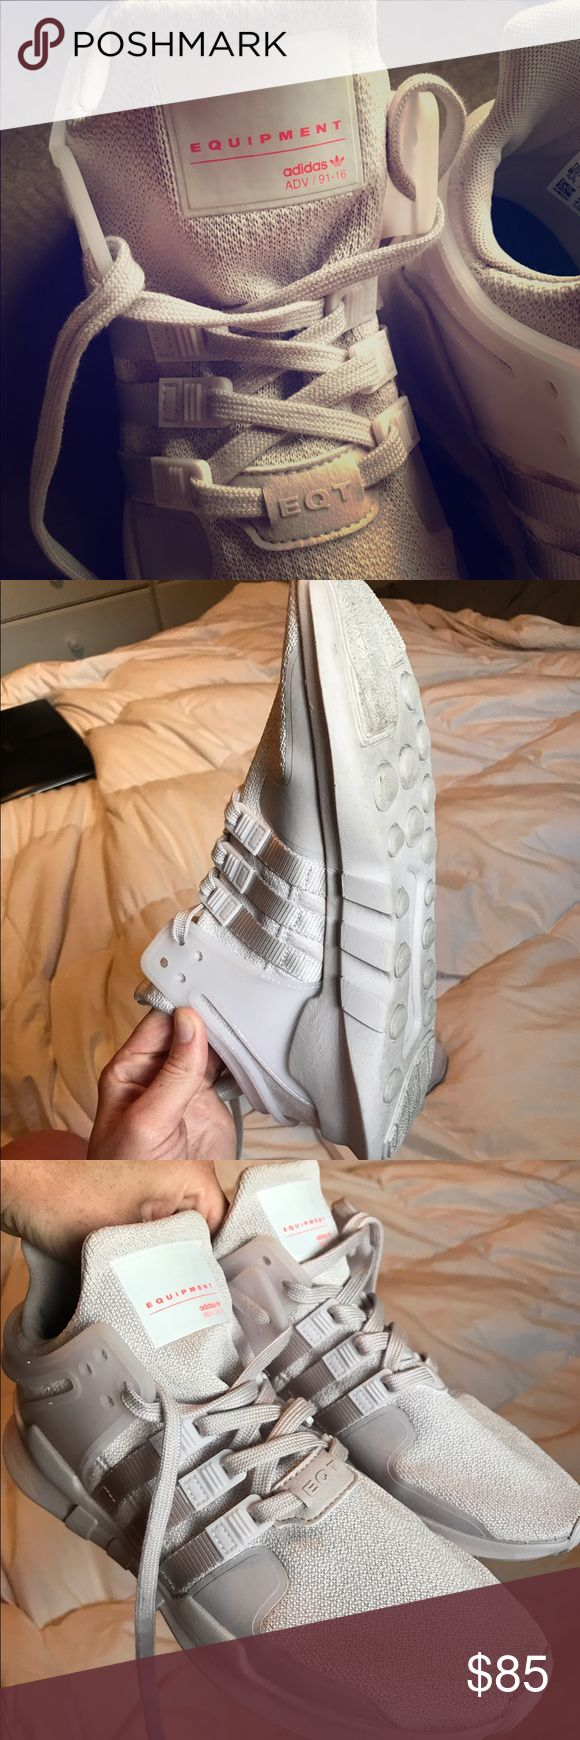 Women's Adidas Equipment Shoes Women's adidas equipment shoes / perfect condition / lavender color adidas Shoes Athletic Shoes